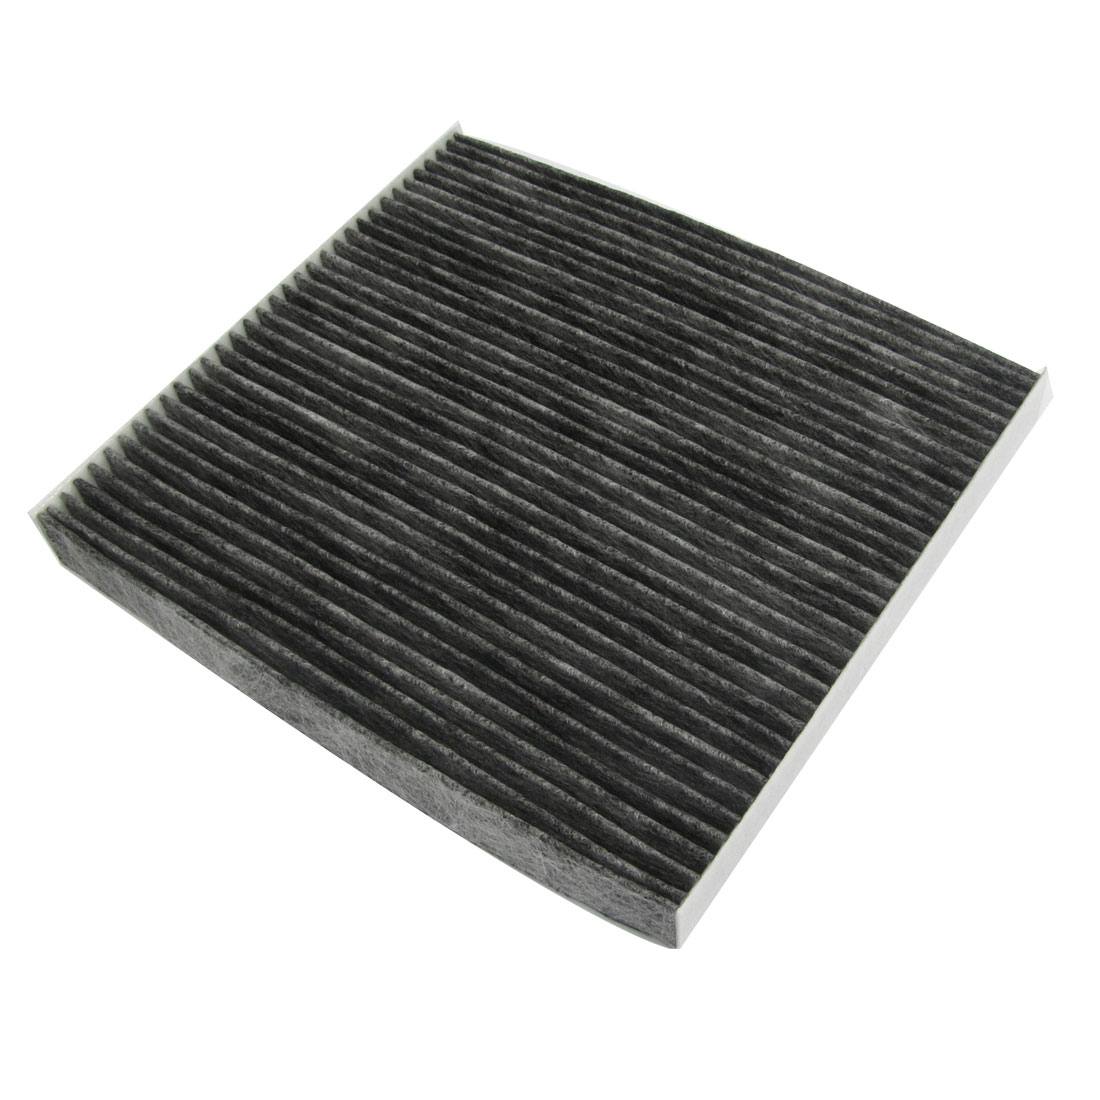 Black Active Carbon Fiber A/C Cabin Air Filter for Mazda 6